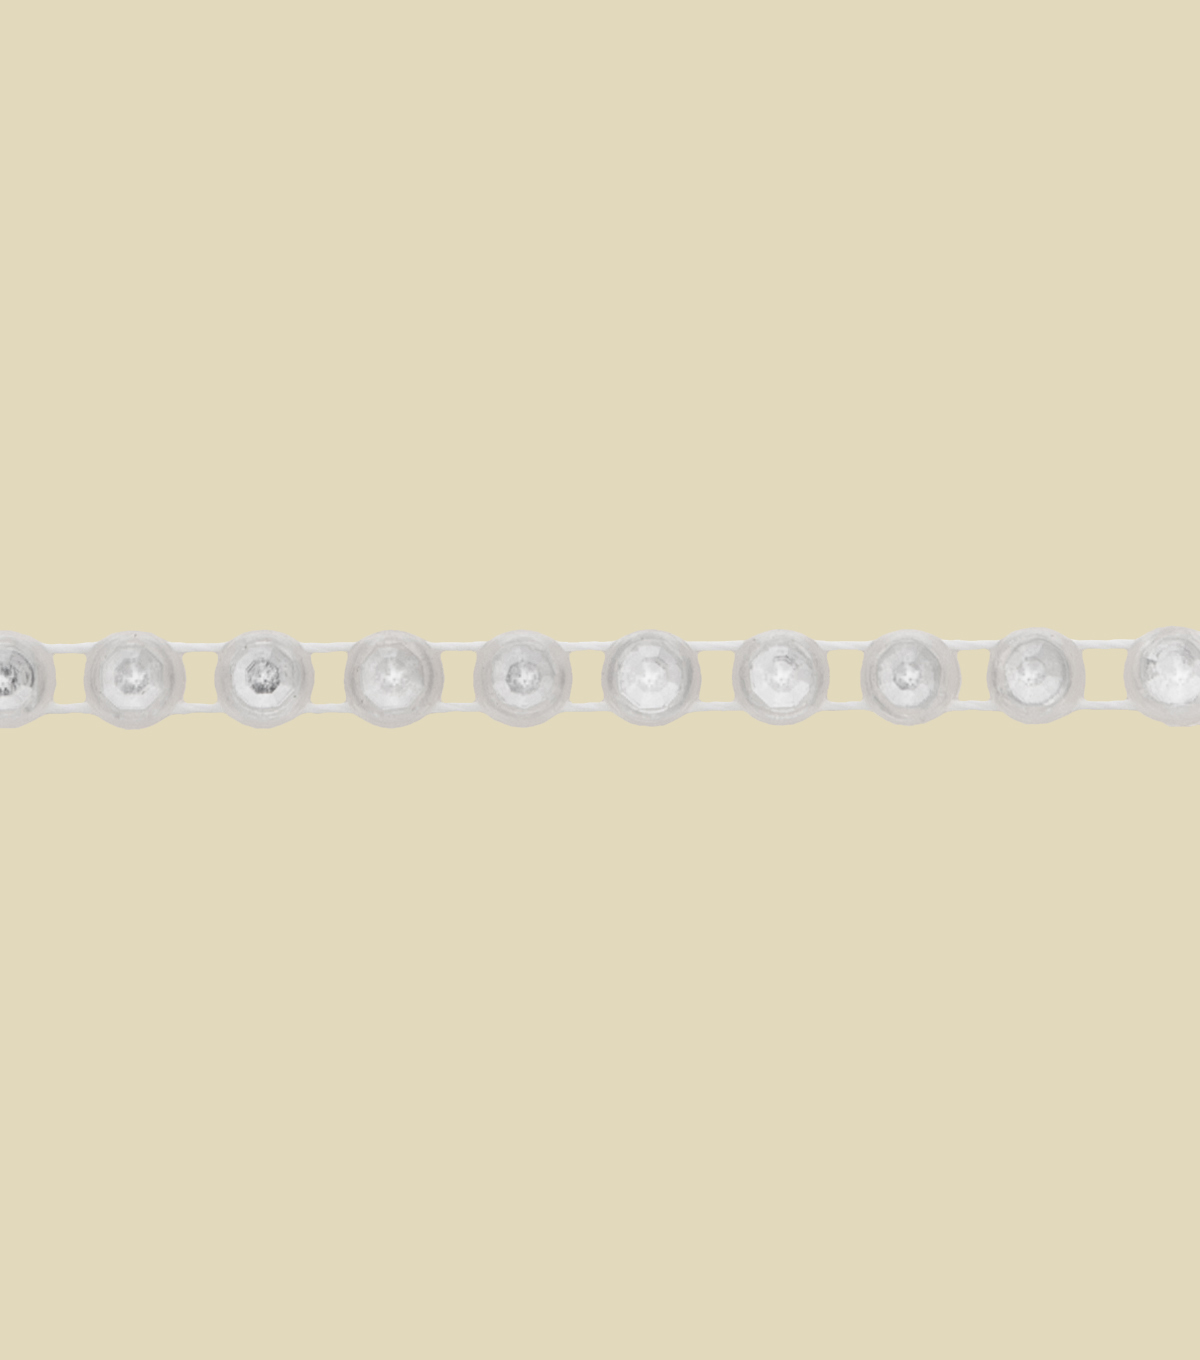 6mm Fused Pearl White Apparel Trim